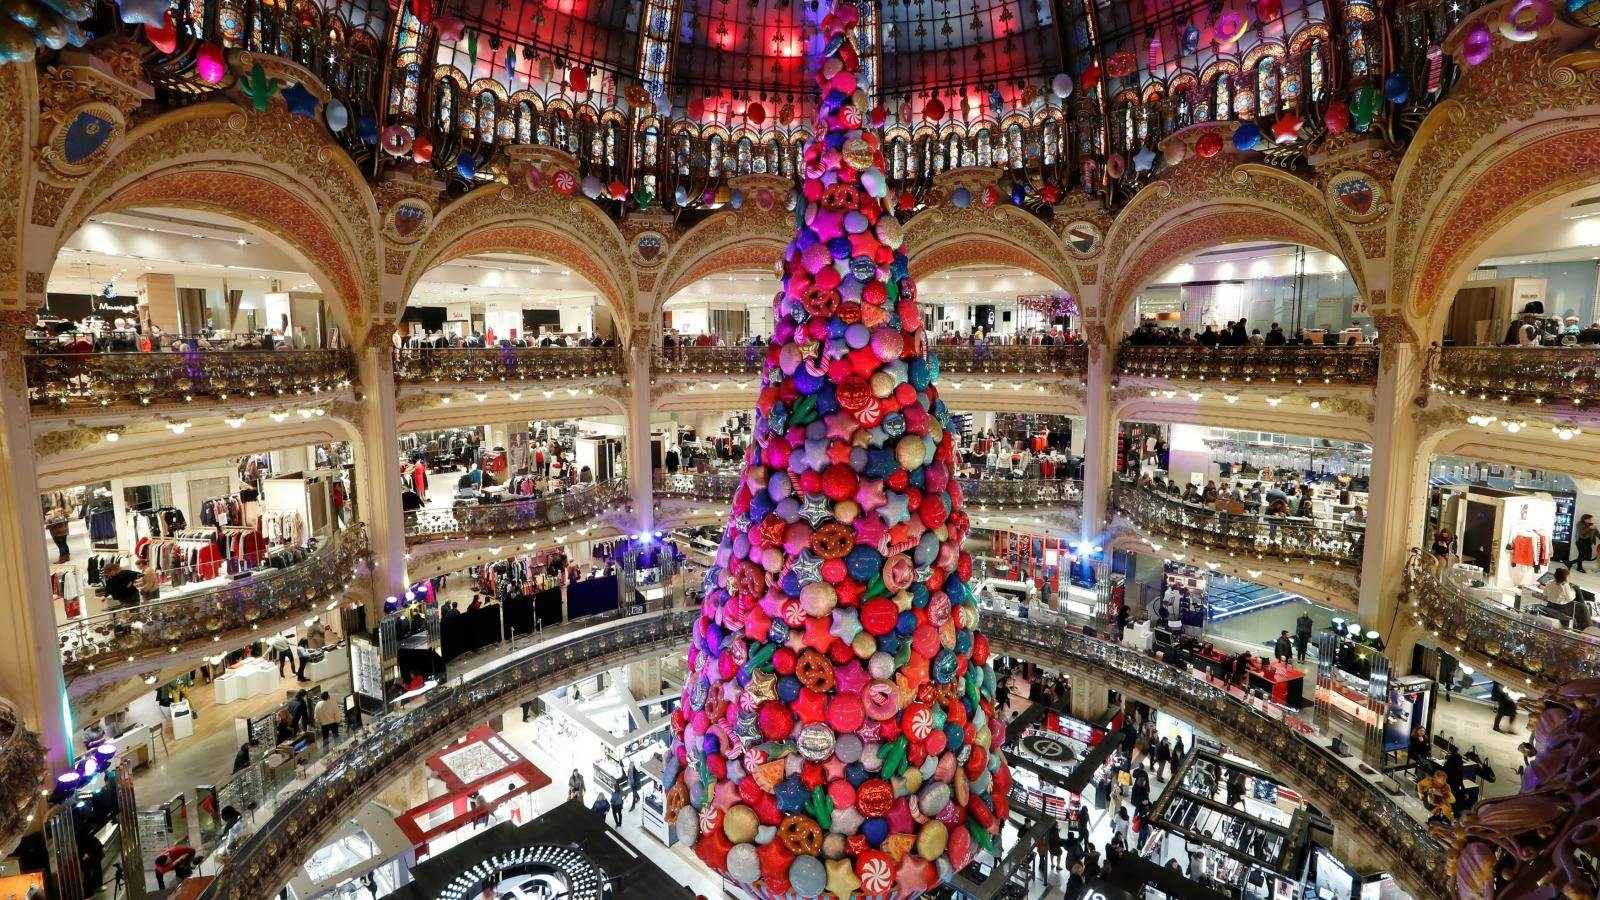 How Many Days Left For Christmas.Christmas Shopping 2017 When Can You Save The Most Money